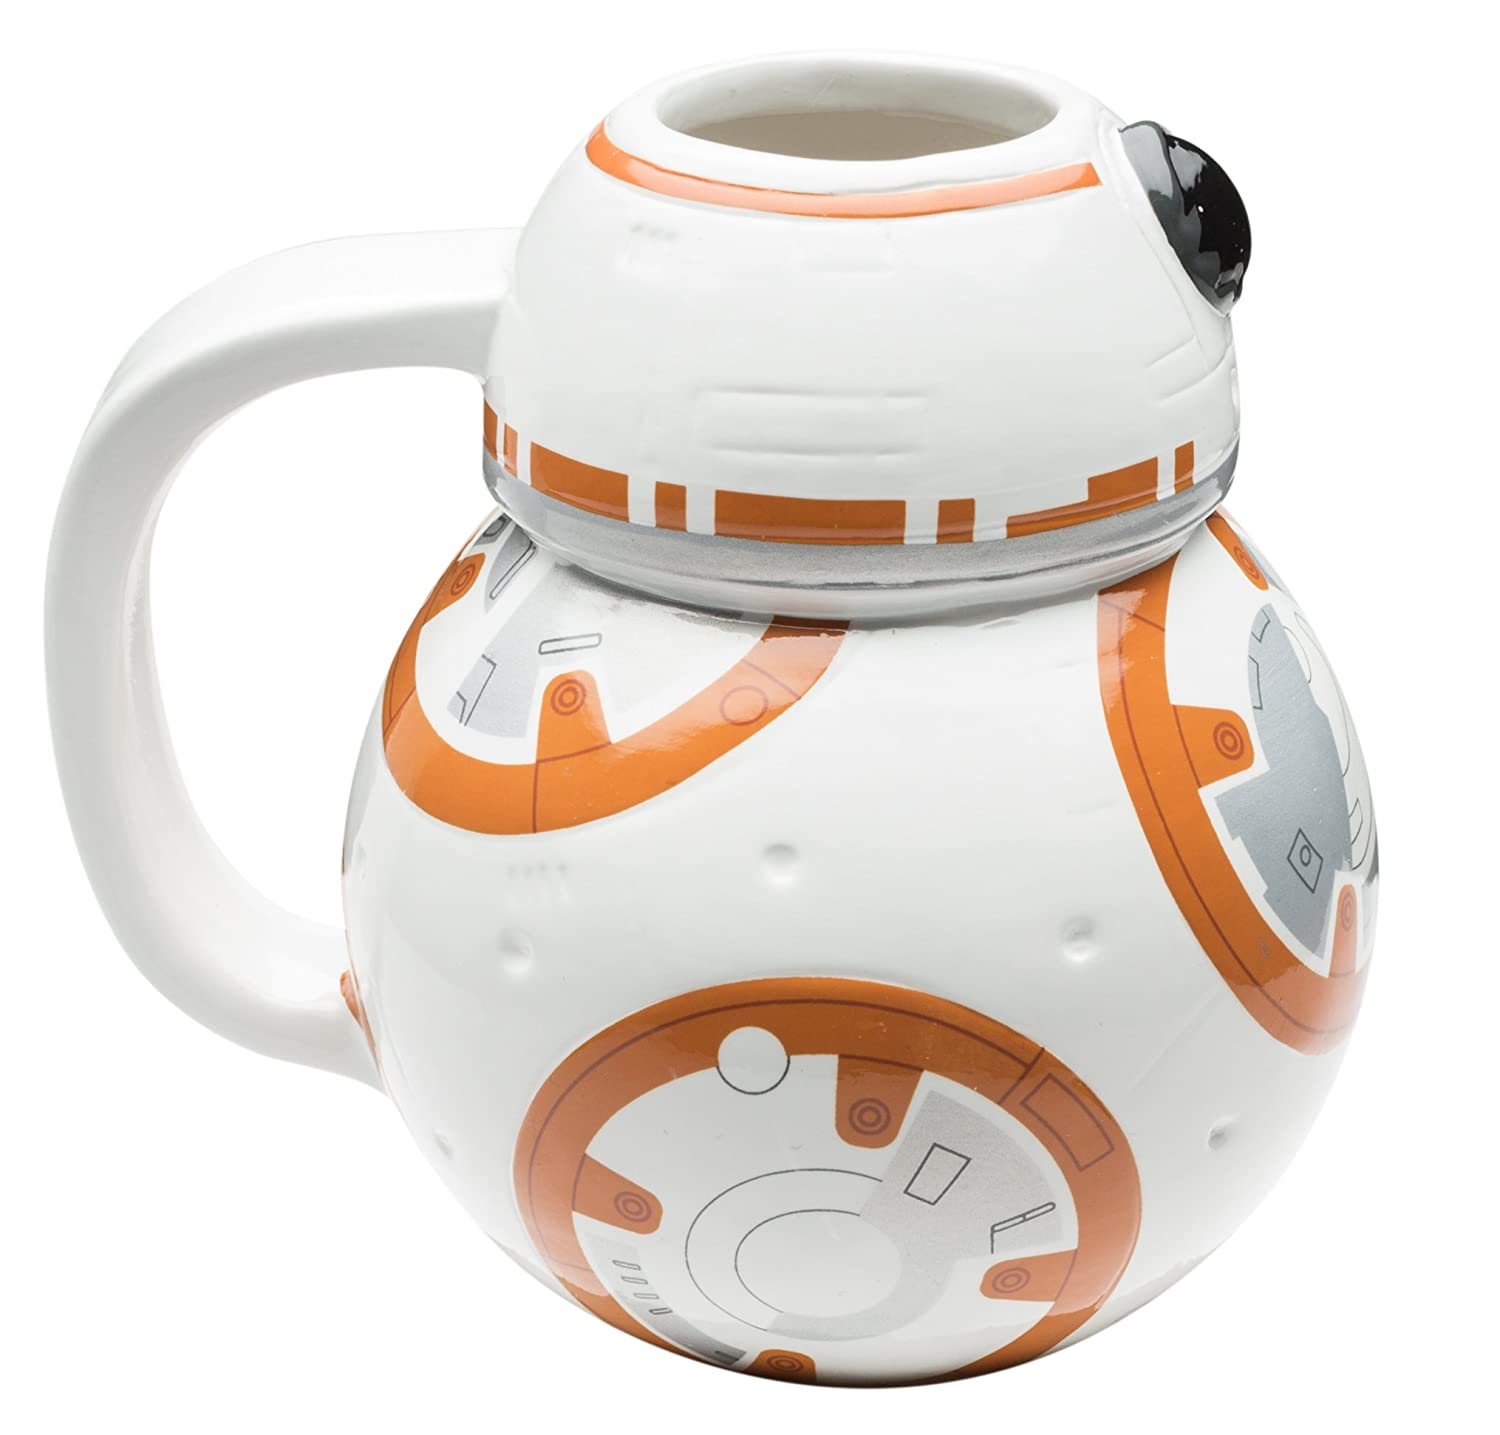 the office star mug. designs sculpted ceramic mug in shape of bb8 from star wars the force awakens bpafree collectible kitchen u0026 dining office